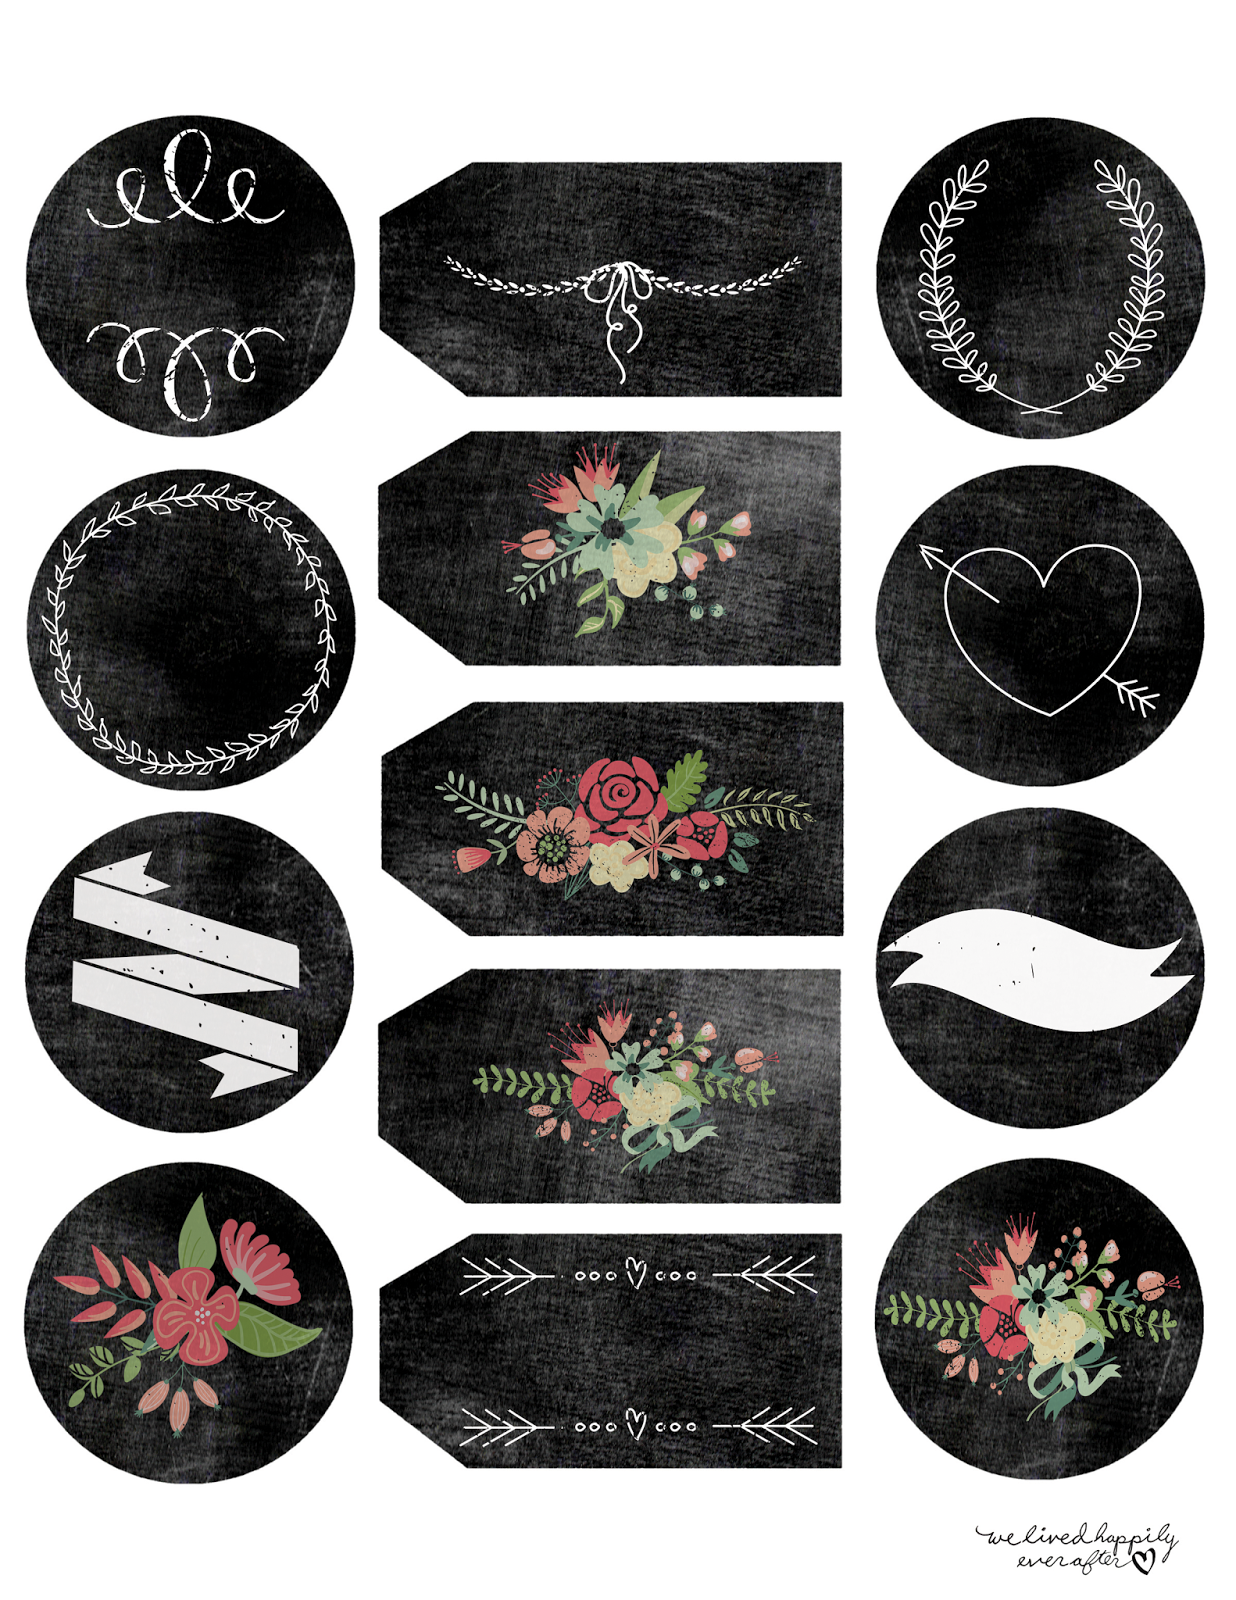 This is a photo of Nifty Printable Chalkboard Labels